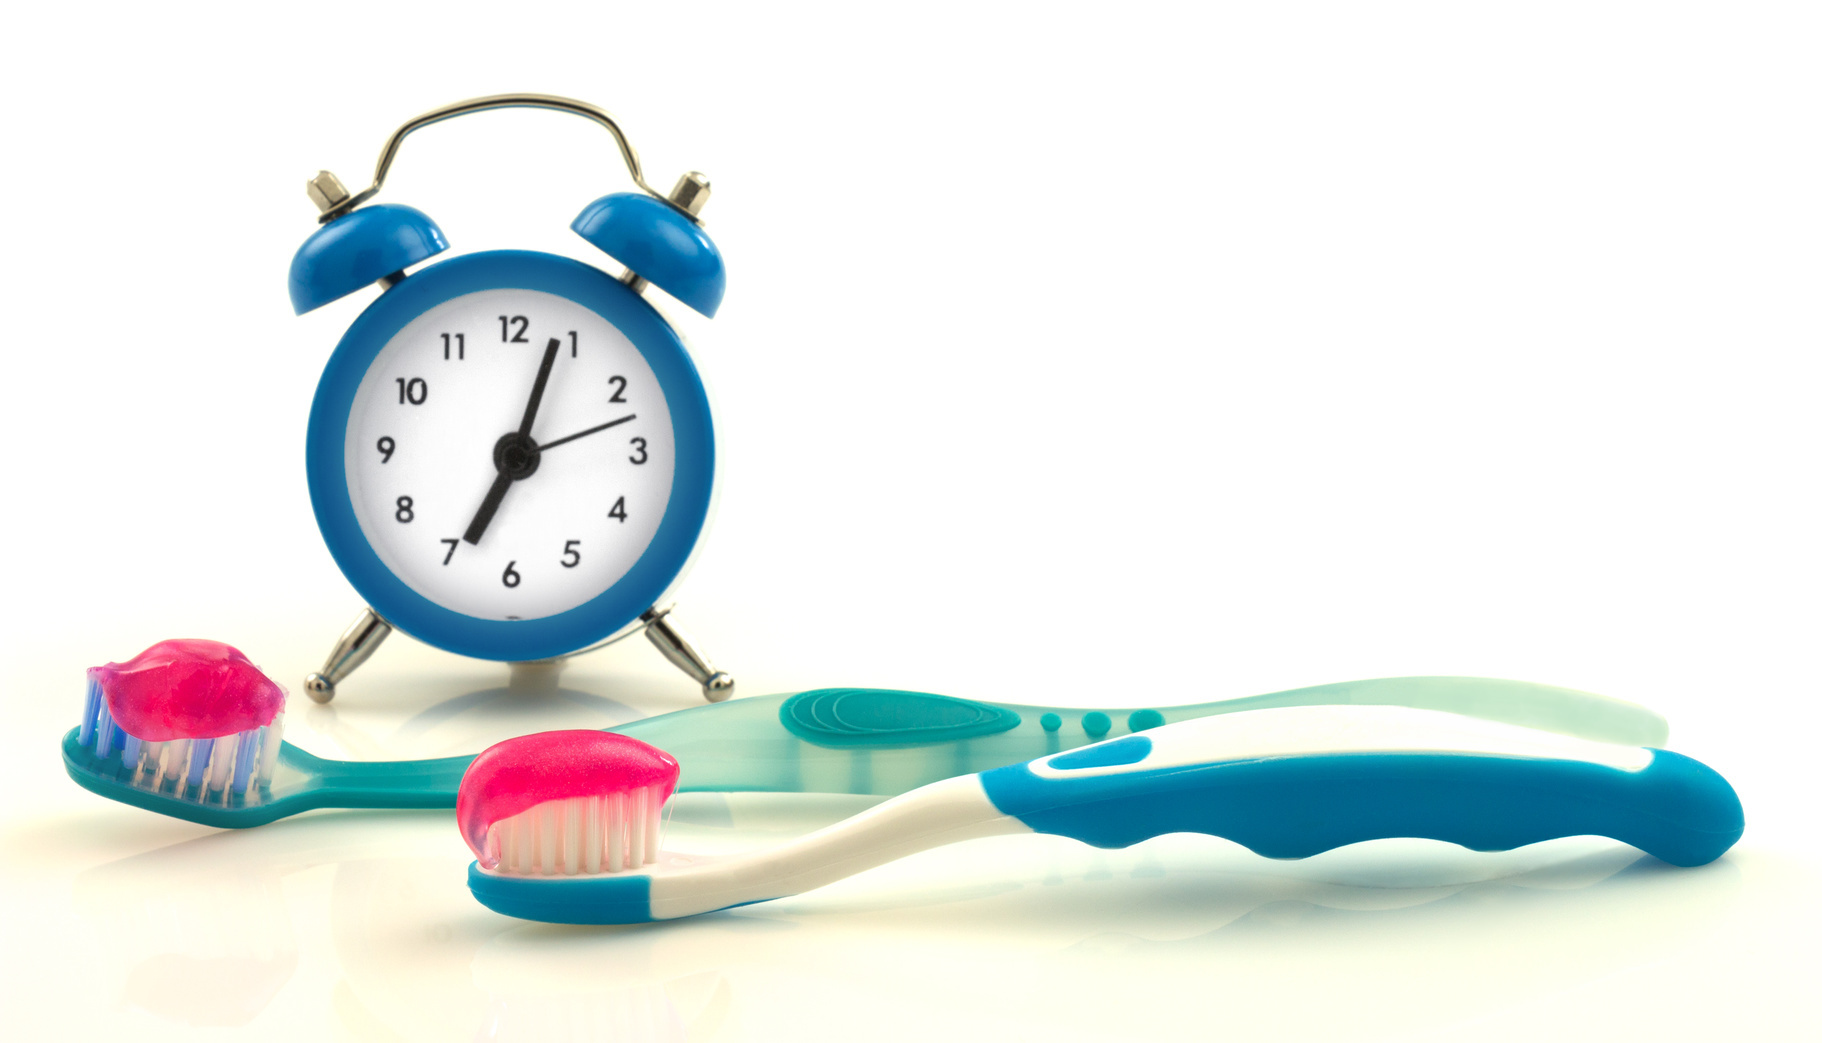 Le timing à respecter pour un brossage de dents optimal